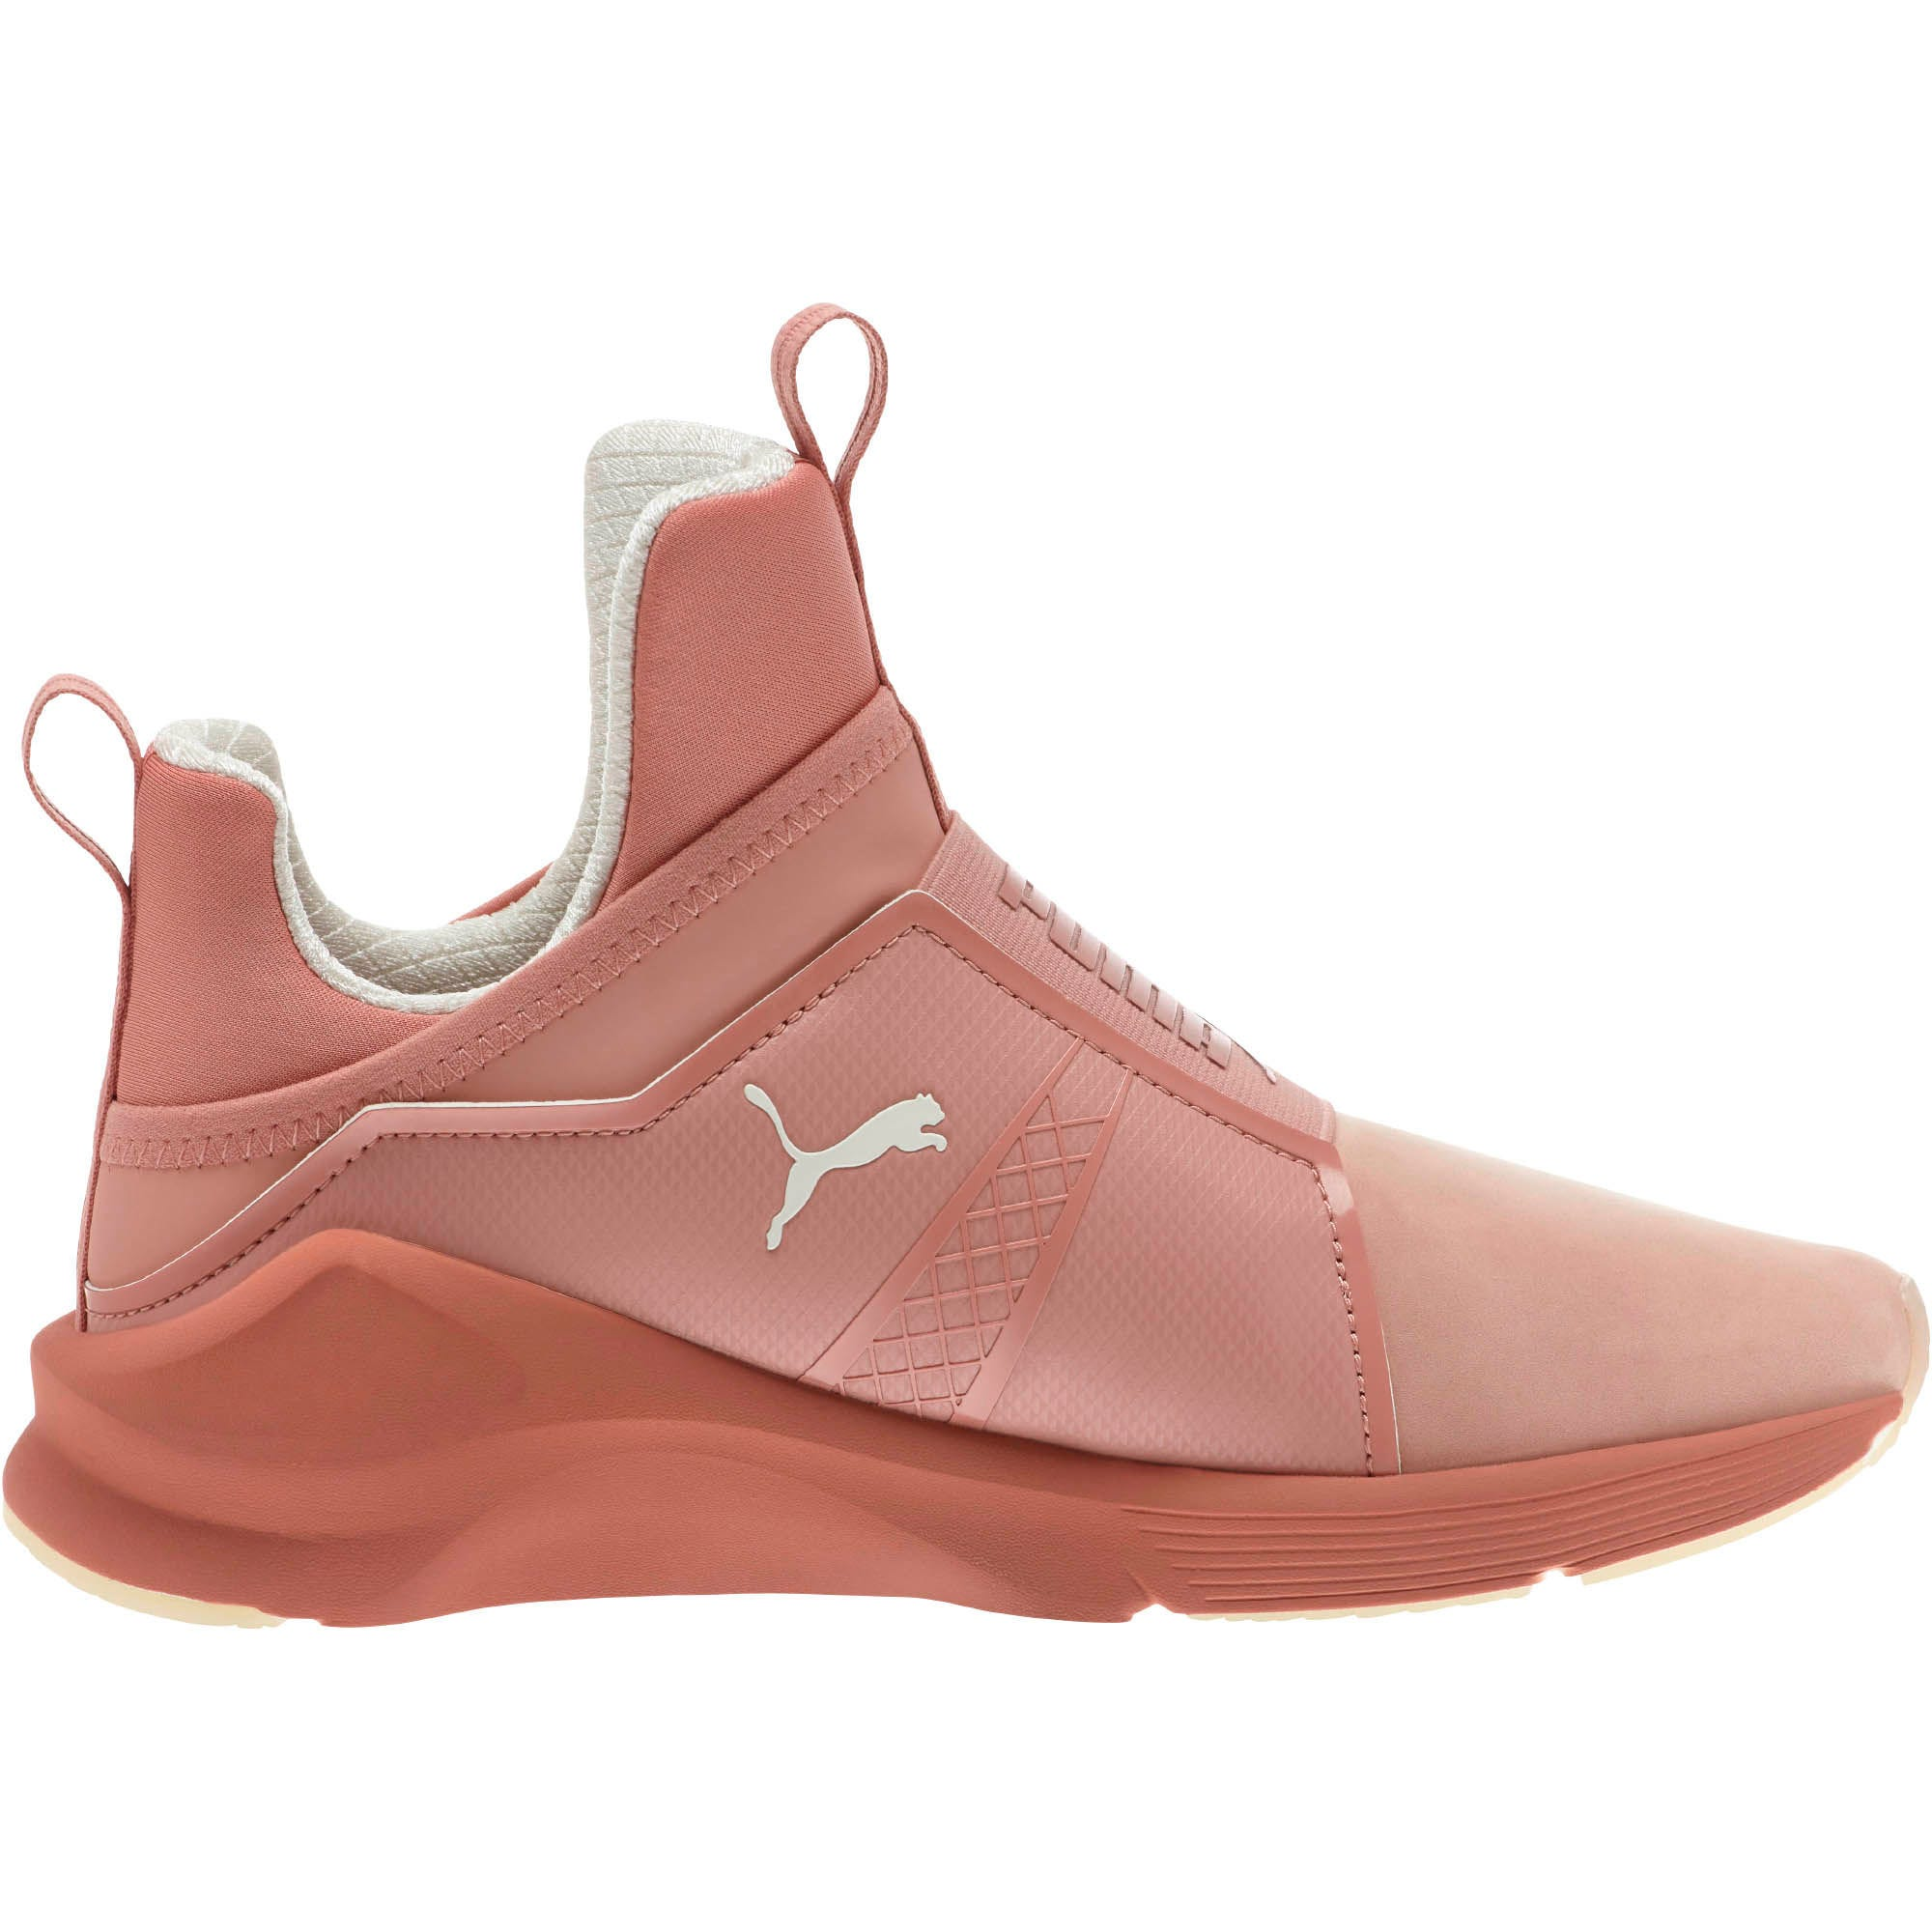 Https En Us 2017 10 179136 Meth In Trick Or Little Fresco Pink Bowie Shoes Image